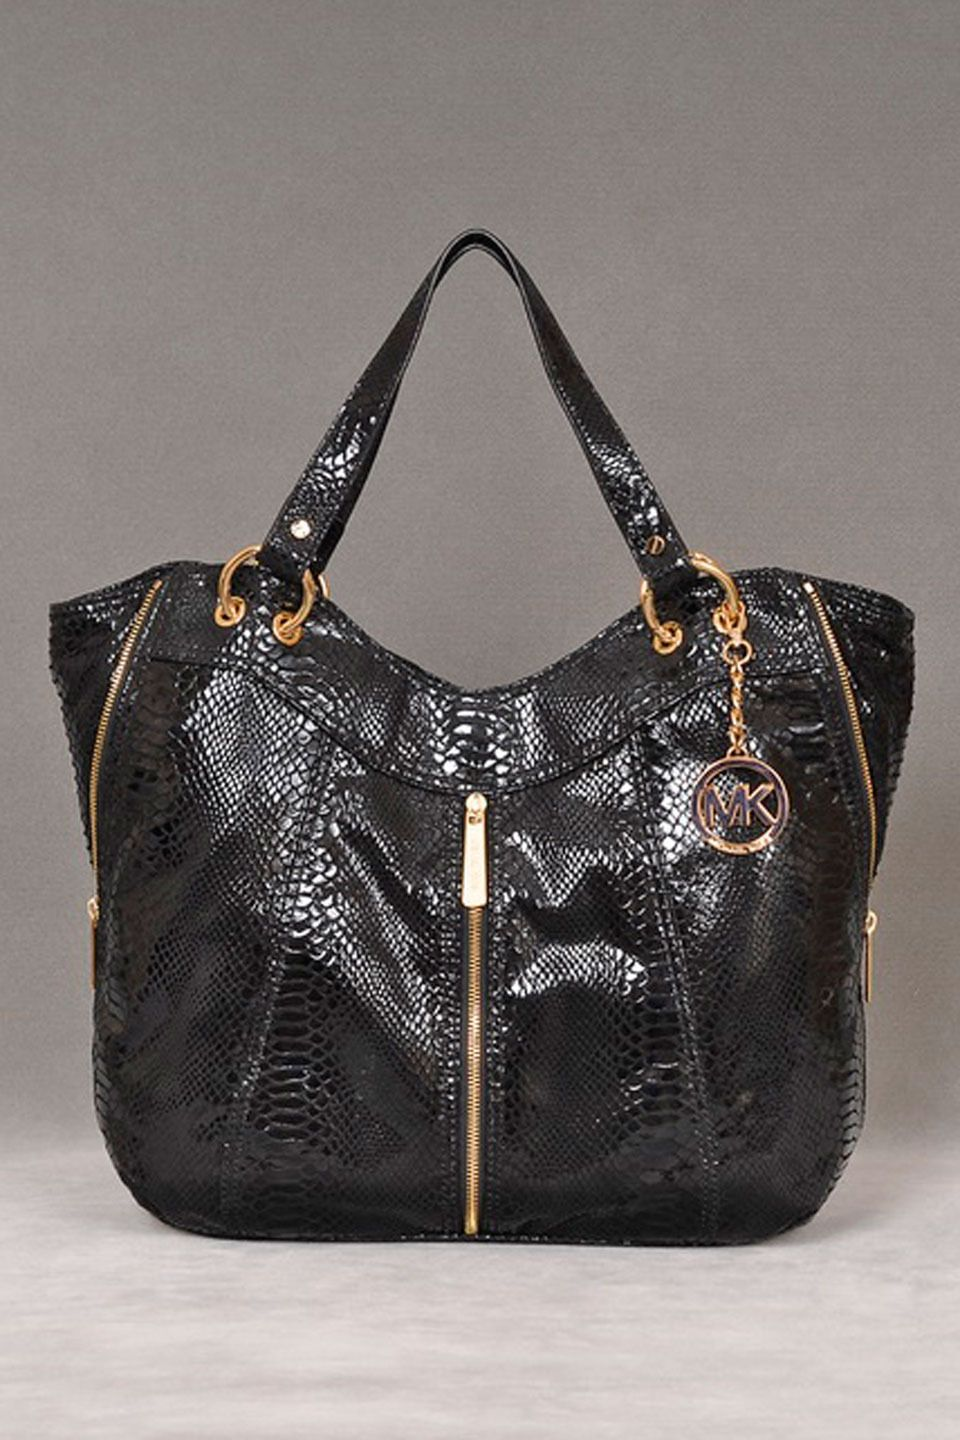 364b2bb6e455 Michael Kors Moxley Shoulder Tote In Black | Your Pinterest likes ...